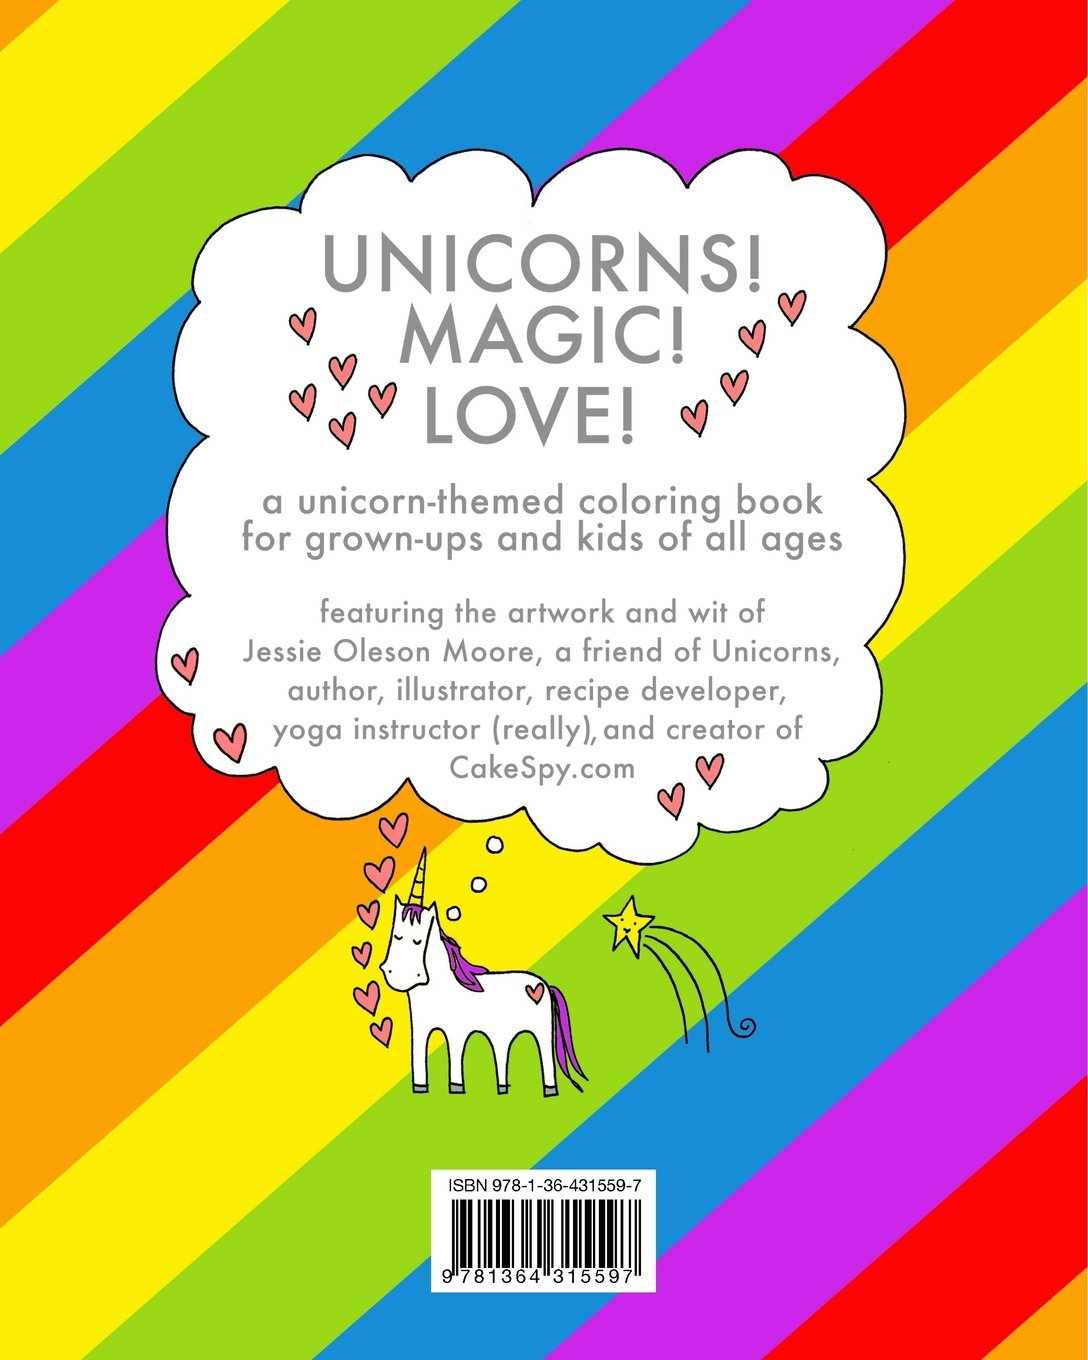 Charming True Colors Book Huge For Colored Girls Book Shaped Color Me Coloring Book 3d Coloring Book Youthful Cheap Coloring Books BrightSonic The Hedgehog Coloring Book Amazon.com: The Unicorn Coloring Book (9781364315597): Jessie ..